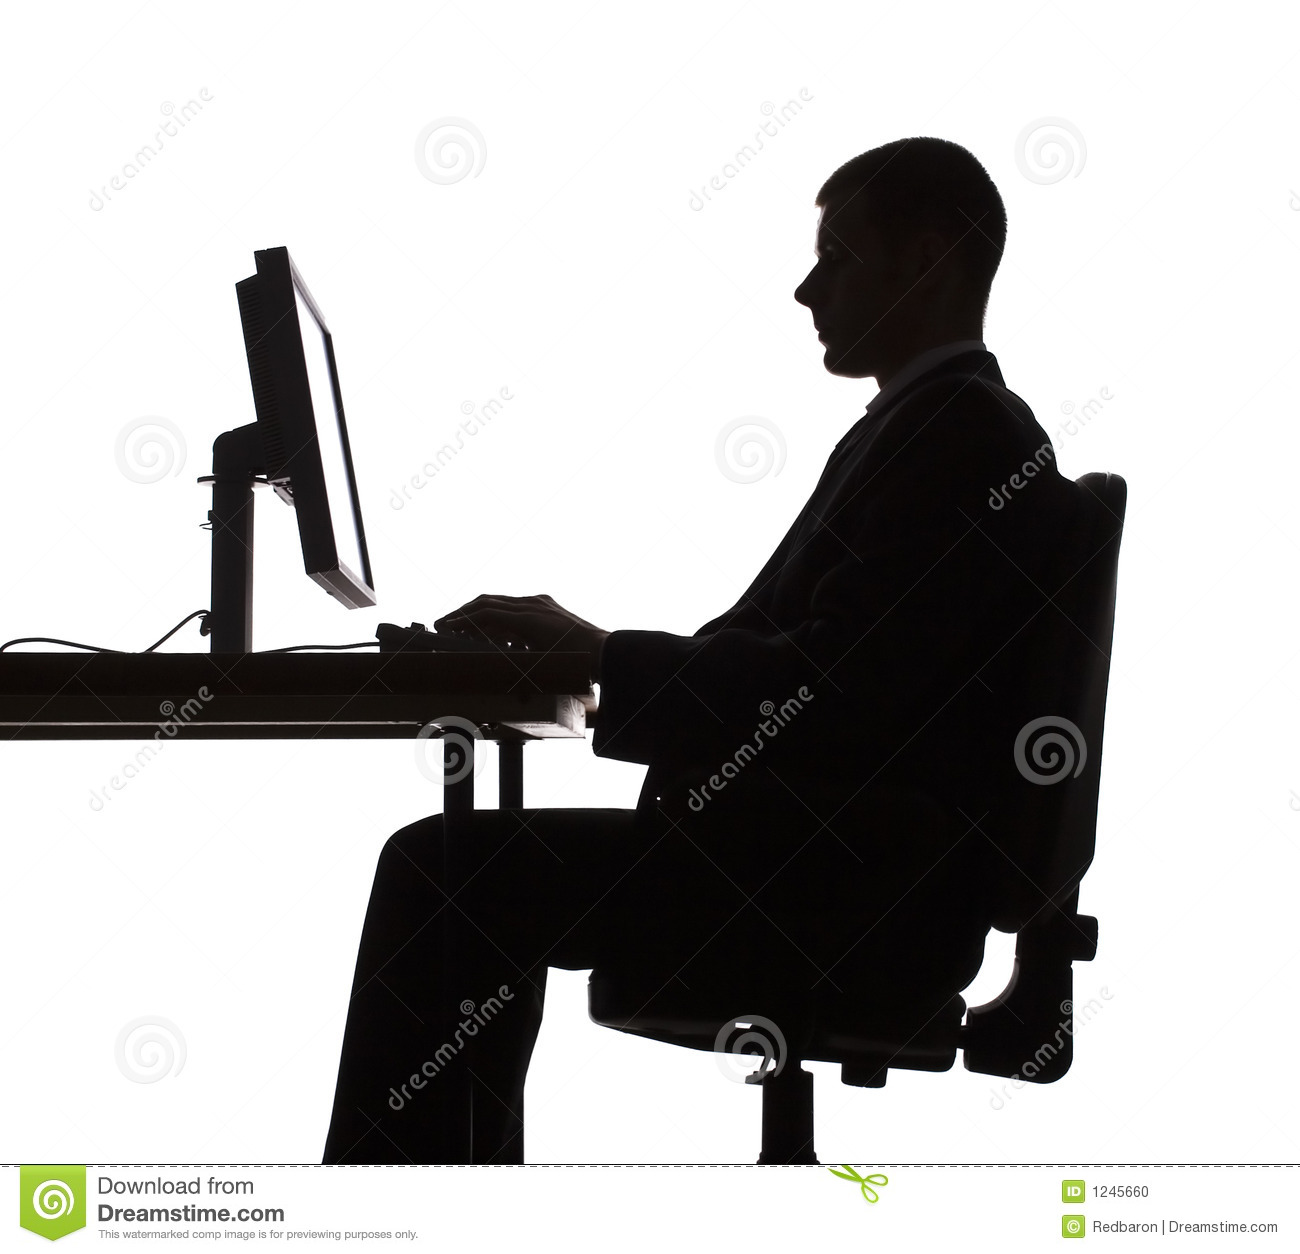 Silhouette Of Man Working Computer Stock Photo Image  : silhouette man working computer 1245660  from www.dreamstime.com size 1300 x 1254 jpeg 154kB